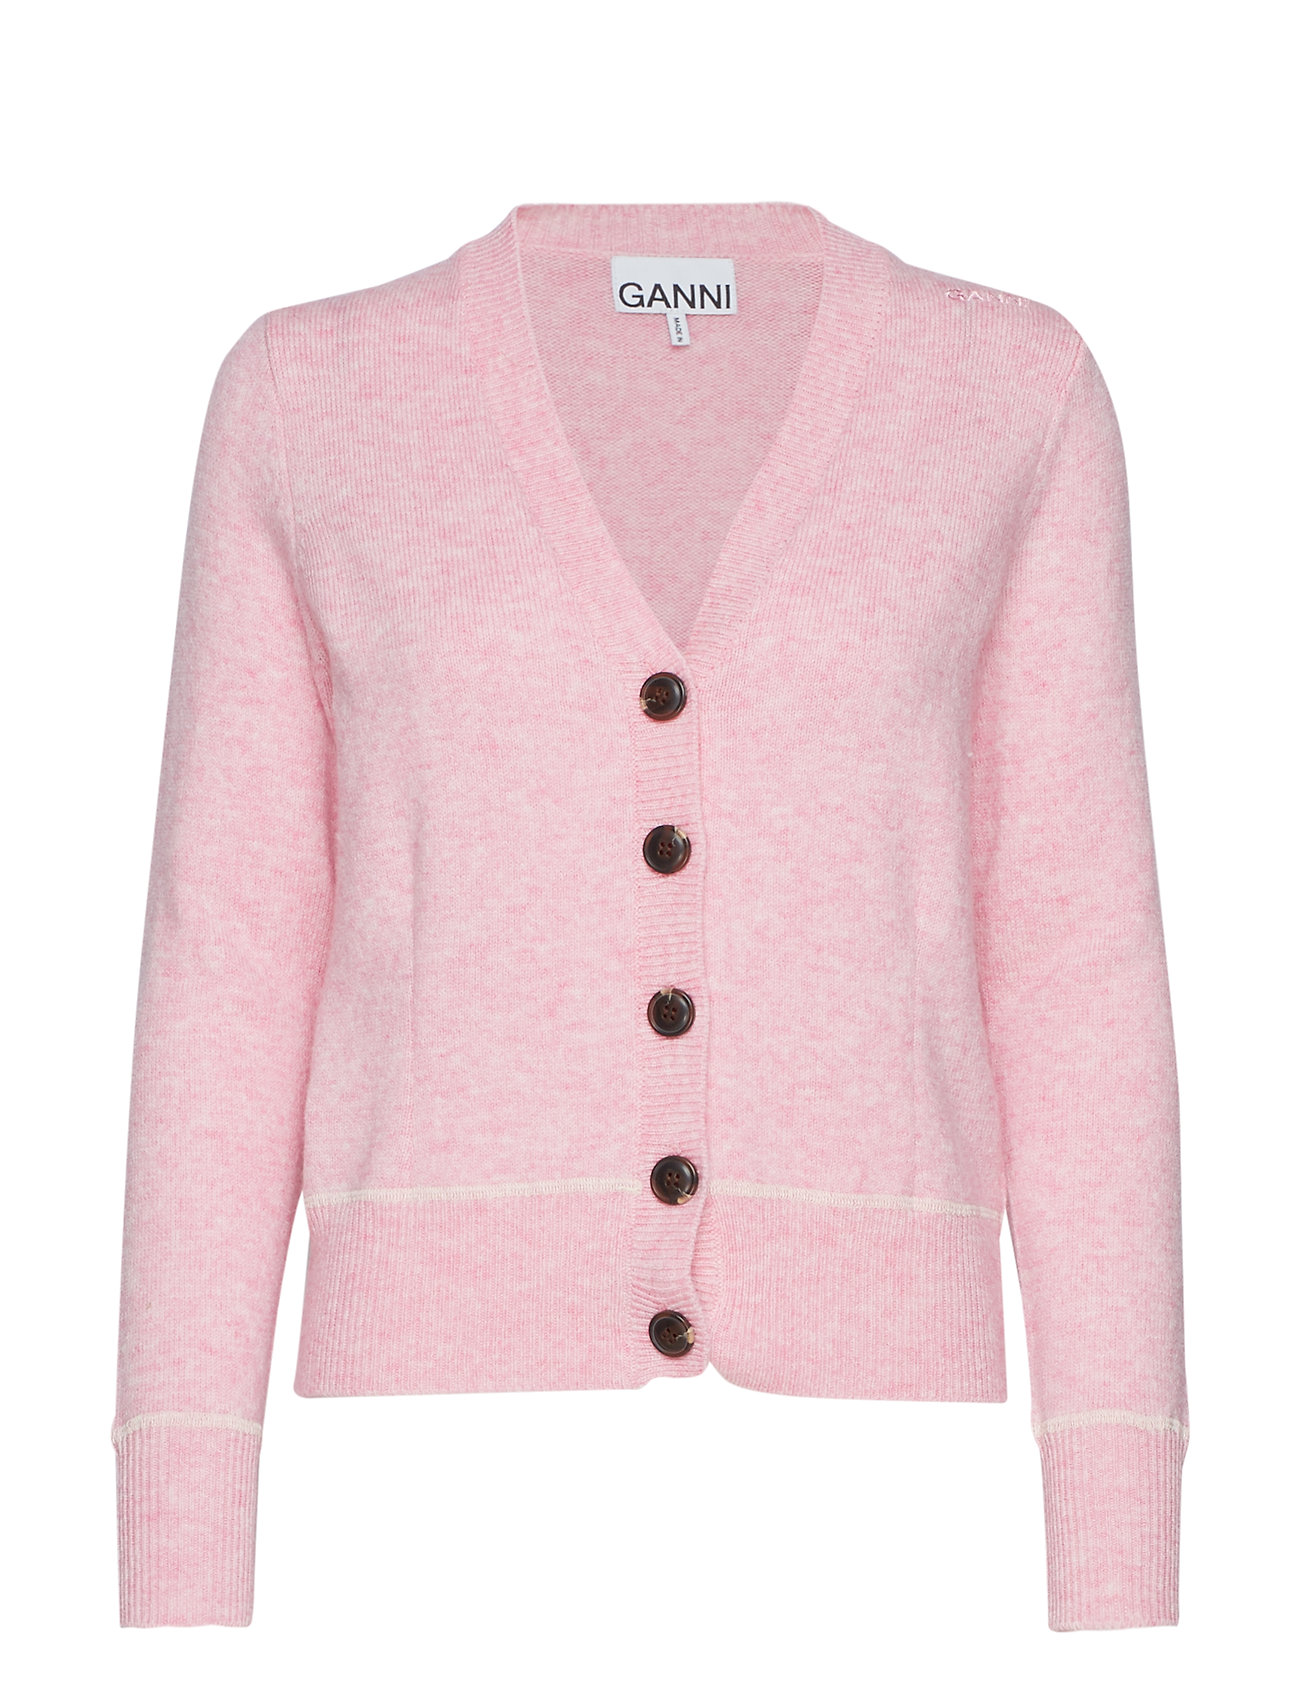 Ganni Wool Knit - CANDY PINK